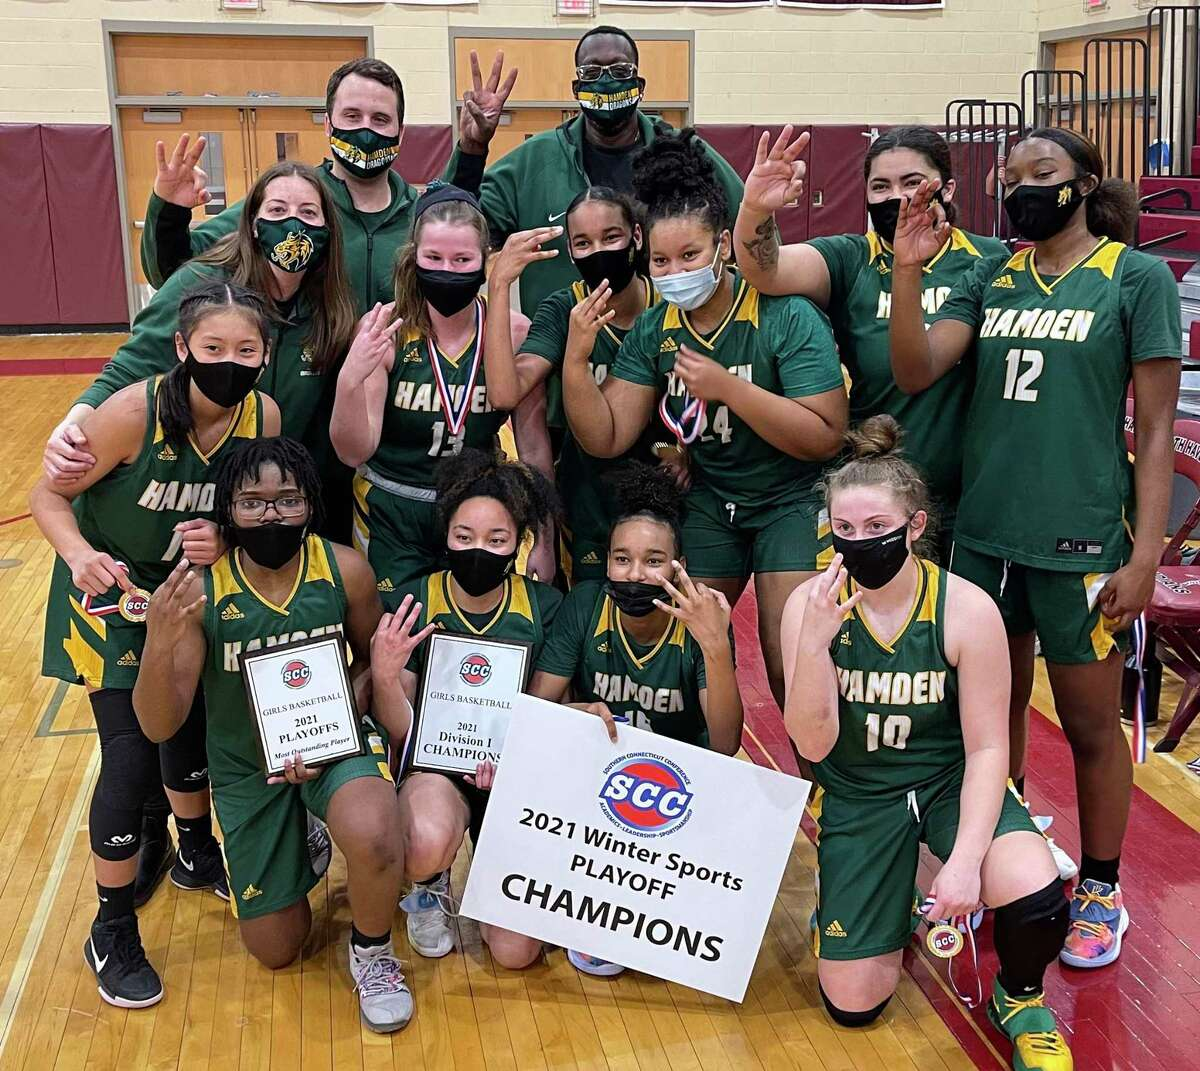 Members of the Hamden girls basketball team celebrate after beating Wilbur Cross in the SCC Division I championship game on Thursday.